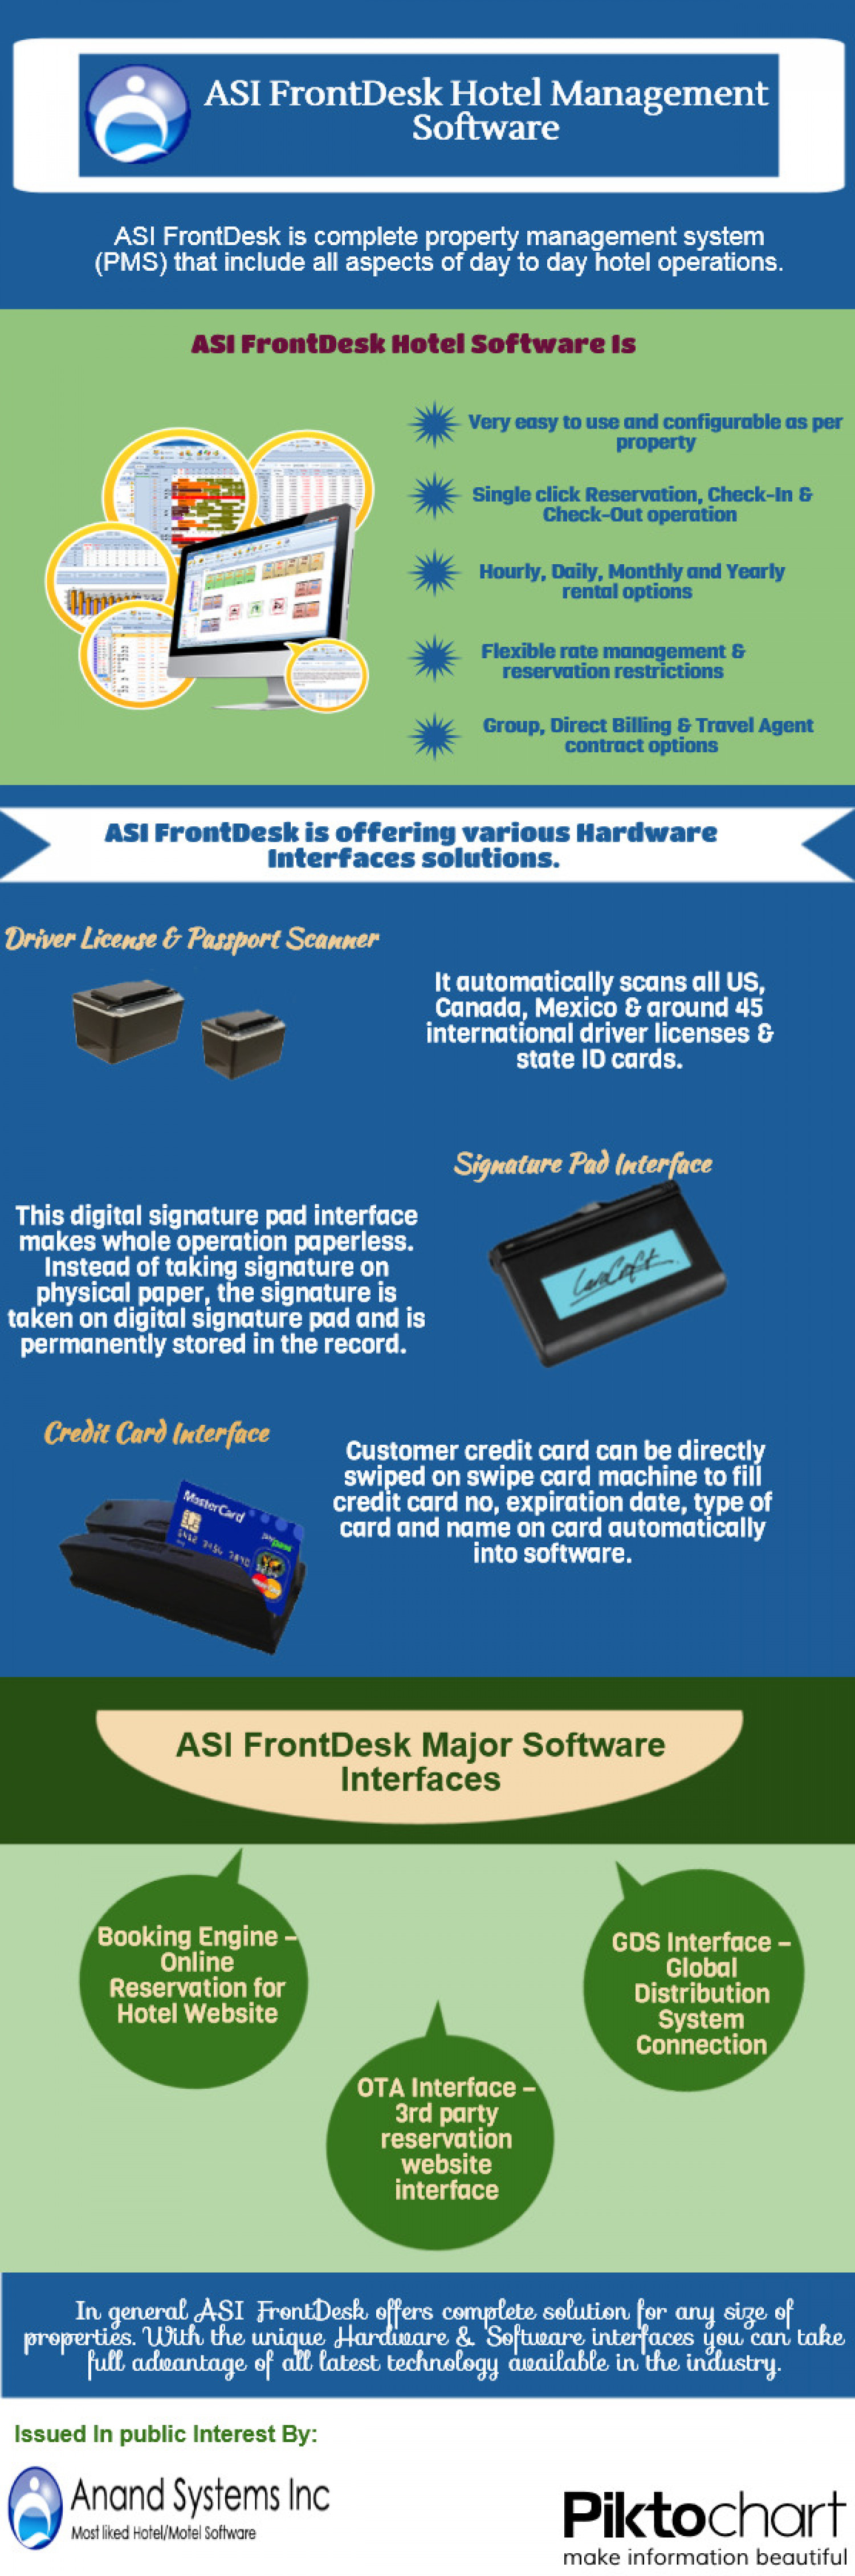 ASI FrontDesk Hotel Management Software Infographic